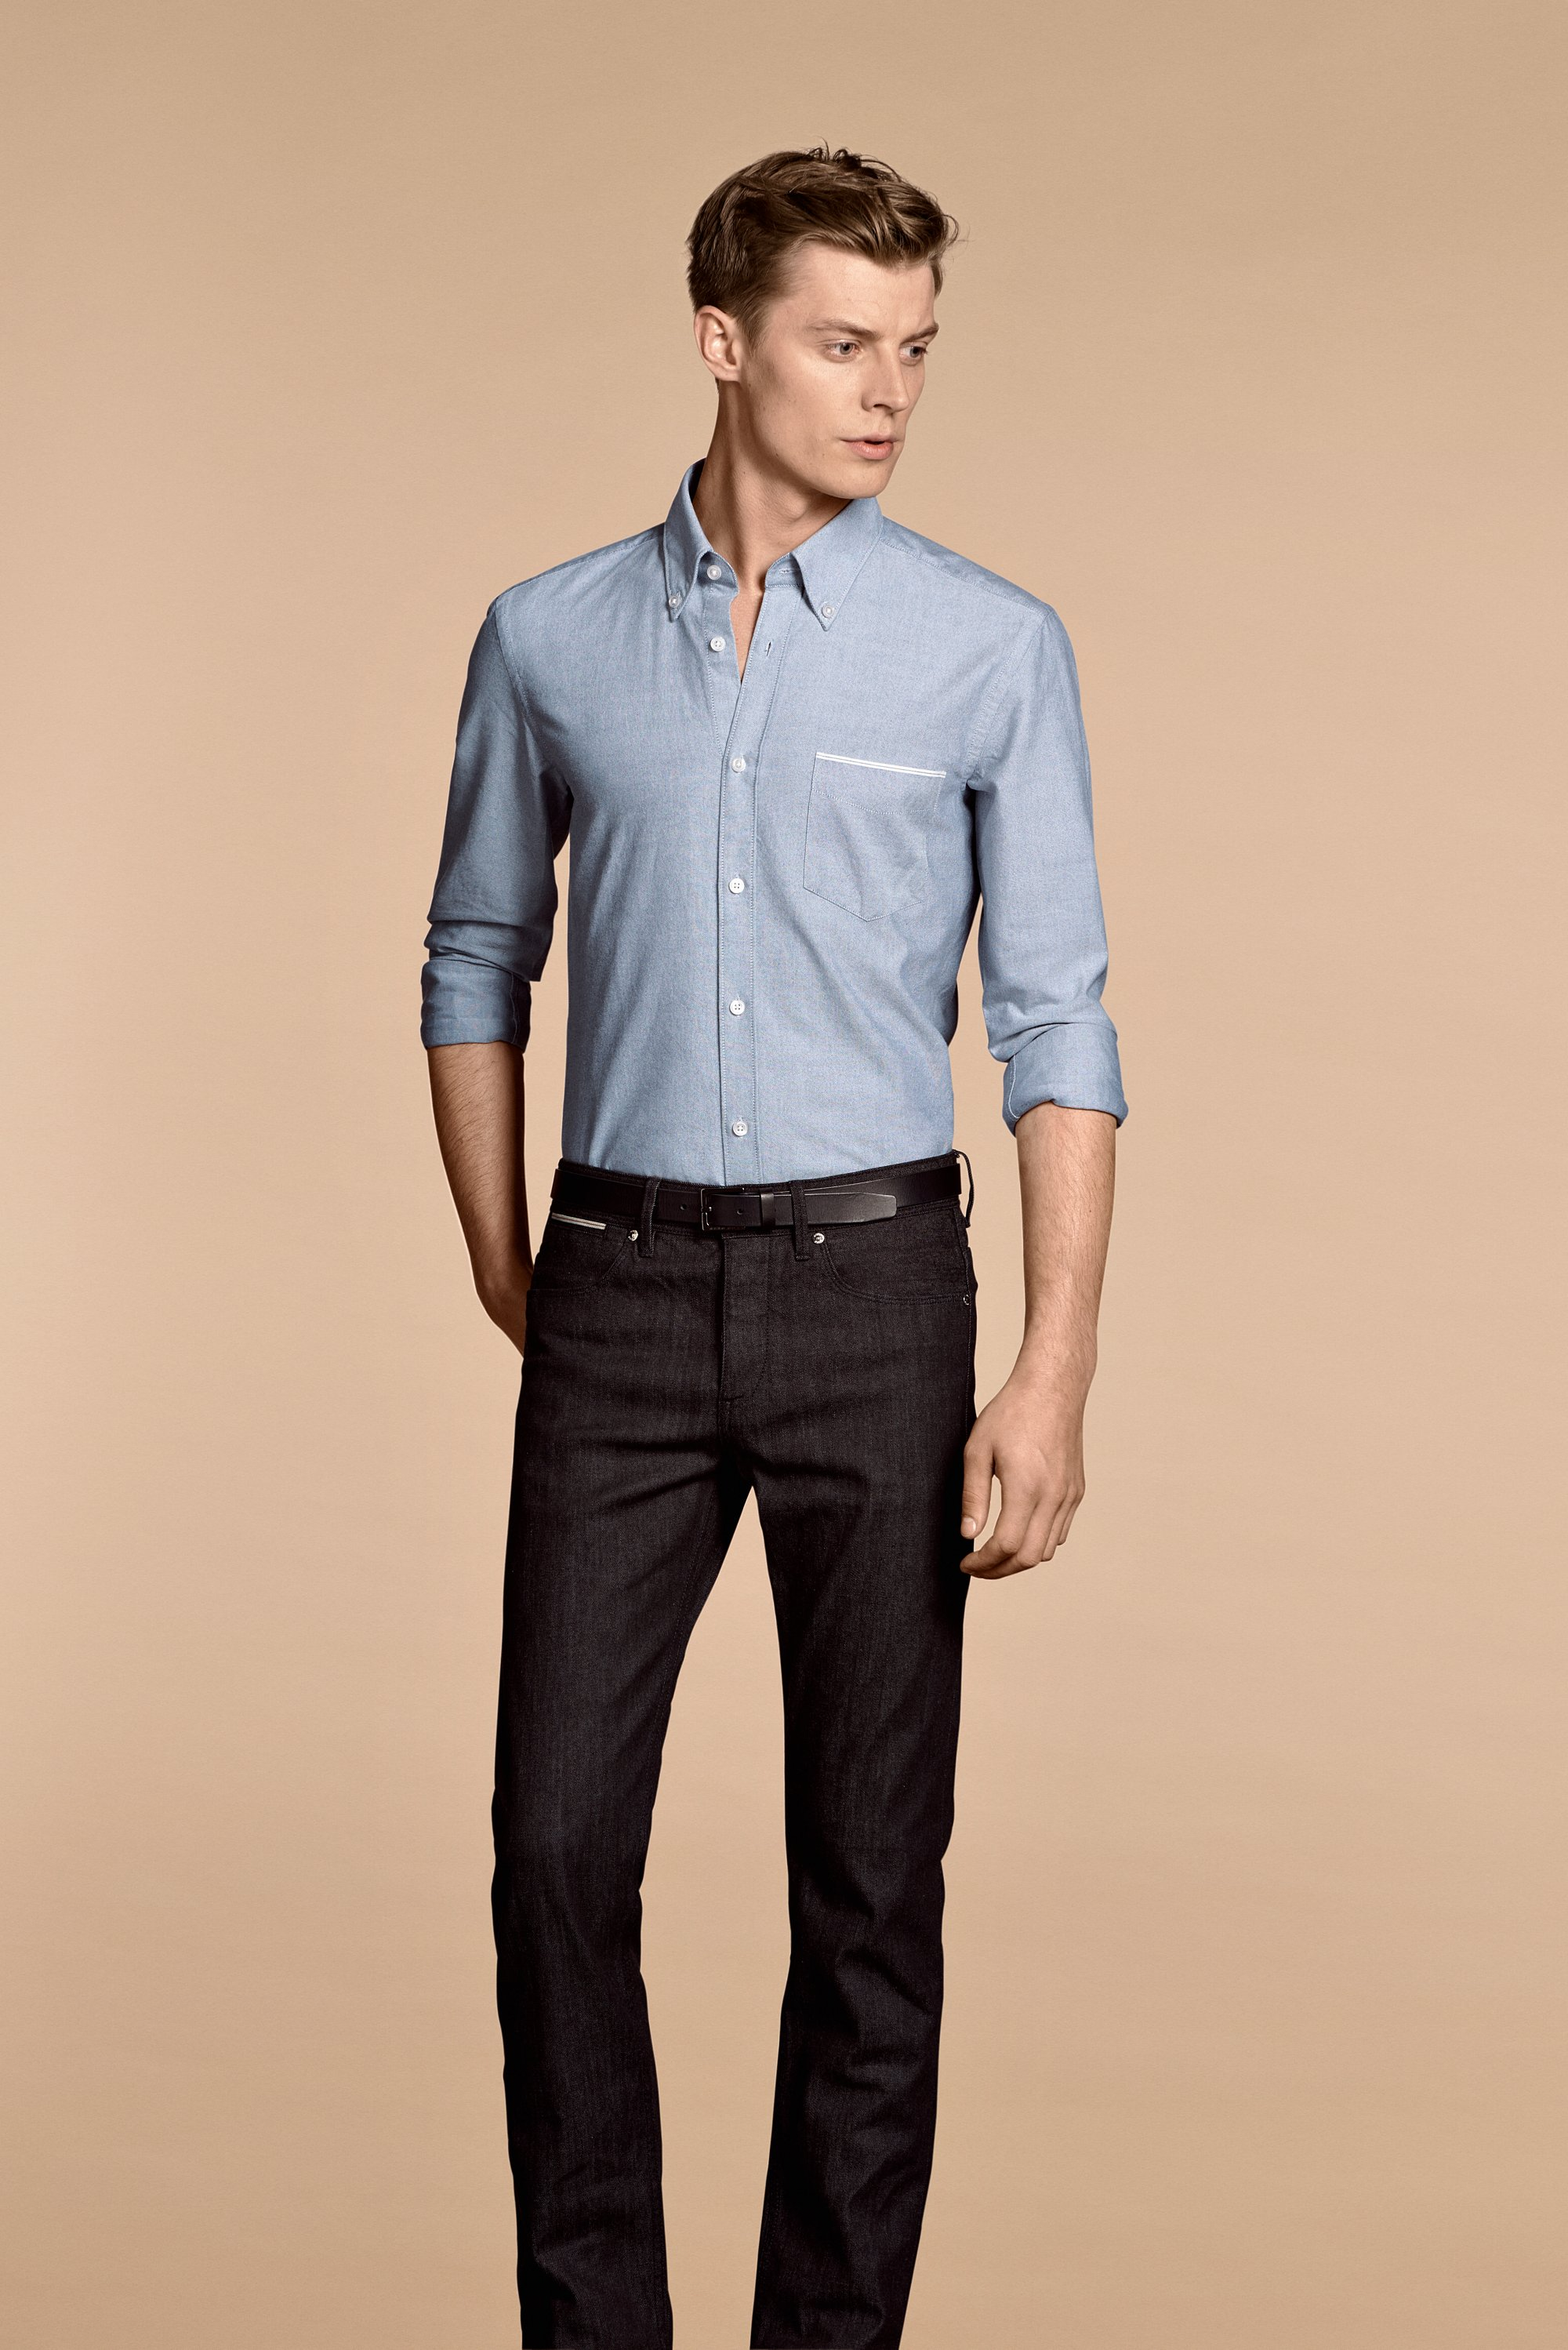 Blue shirt and black jeans by BOSS Menswear